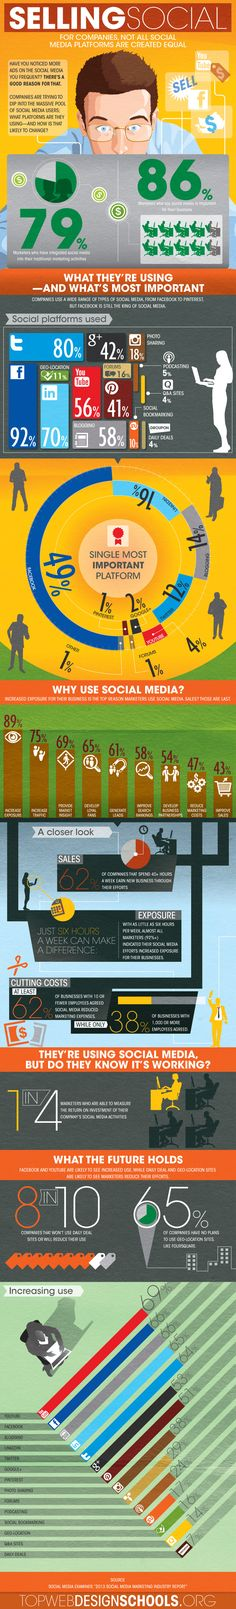 Selling Social: How Companies Are Connecting with Social Media http://scalablesocialmedia.com/2013/06/social-media-platforms-not-created-equal-infographic/